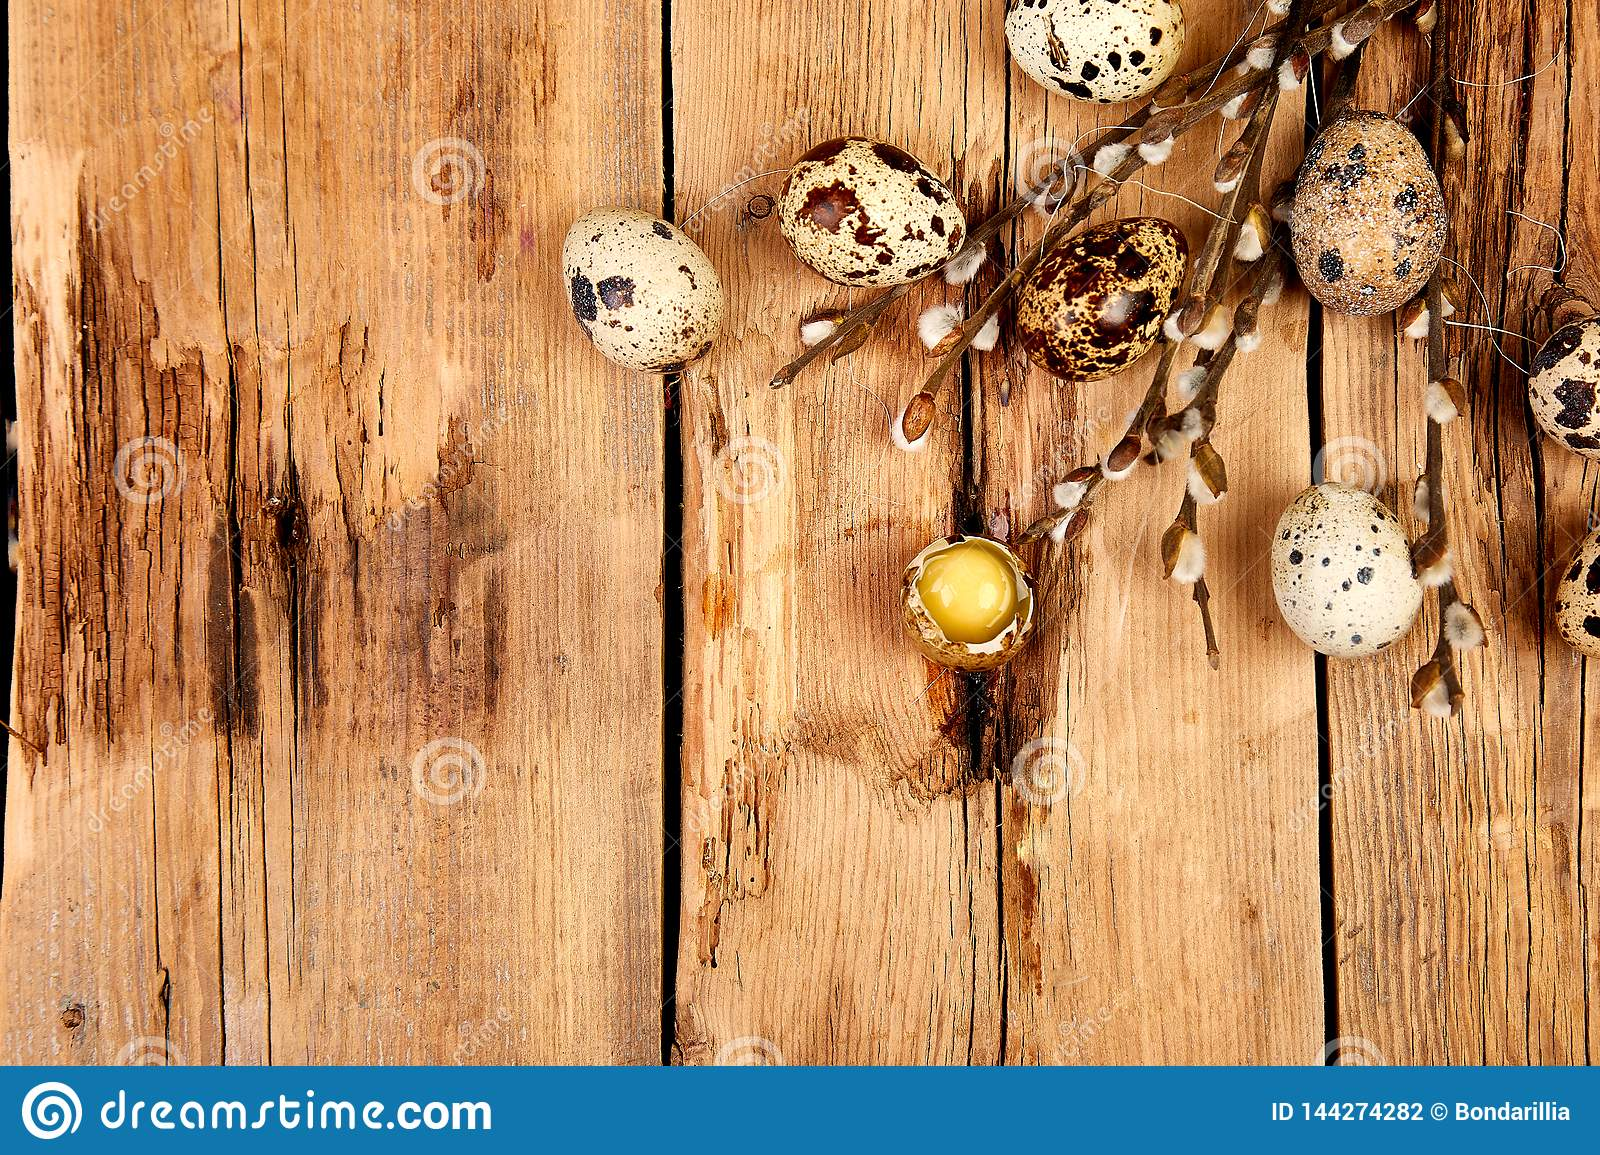 Quail eggs in the nest on wooden background with willow branch